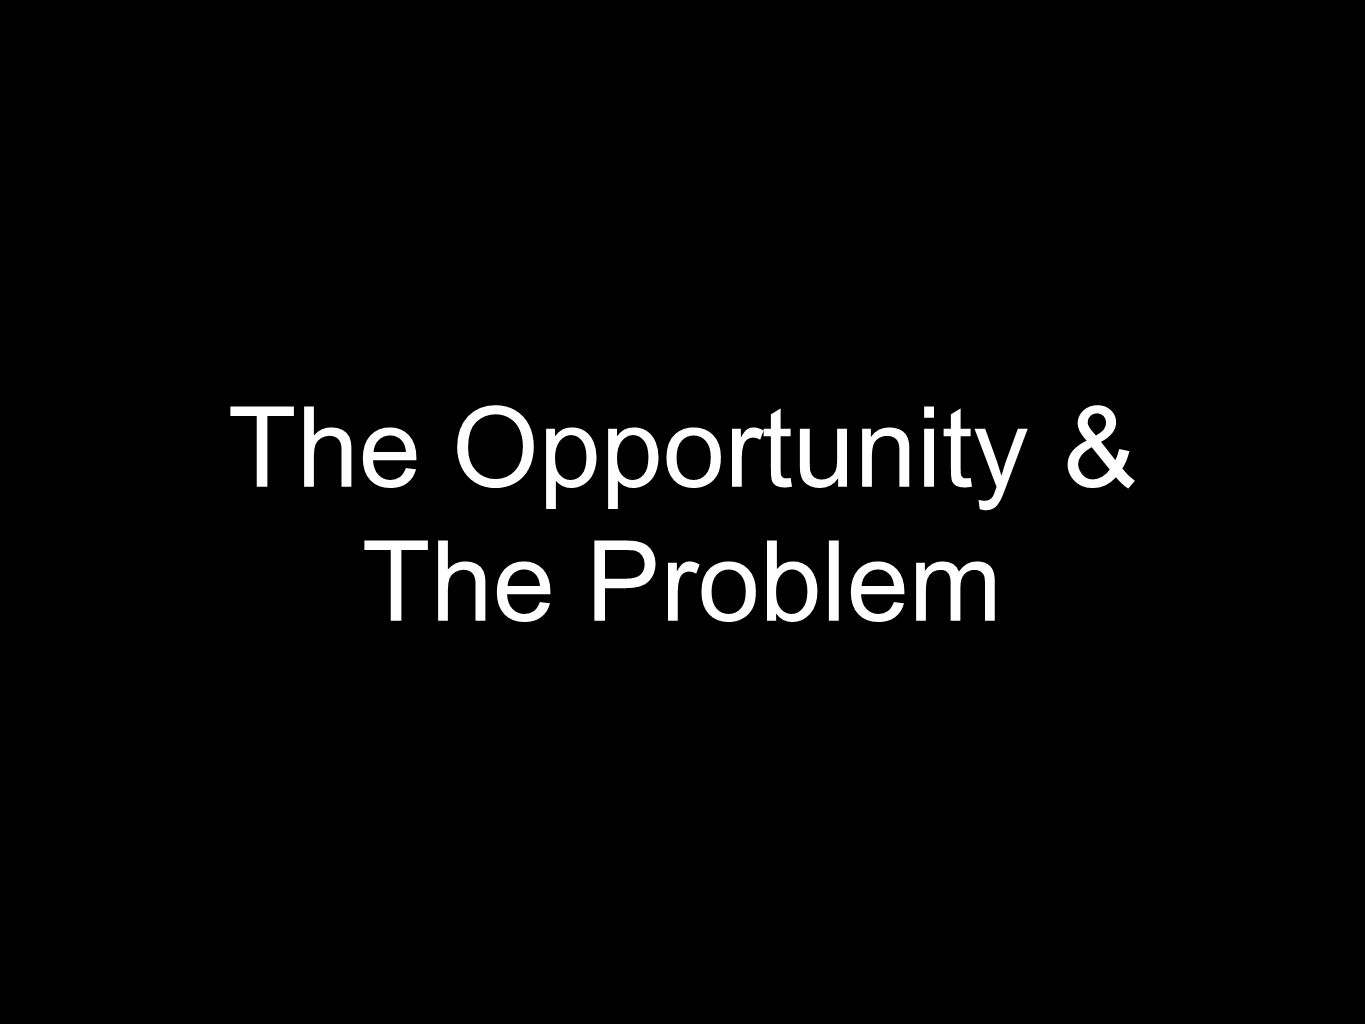 The Opportunity & The Problem